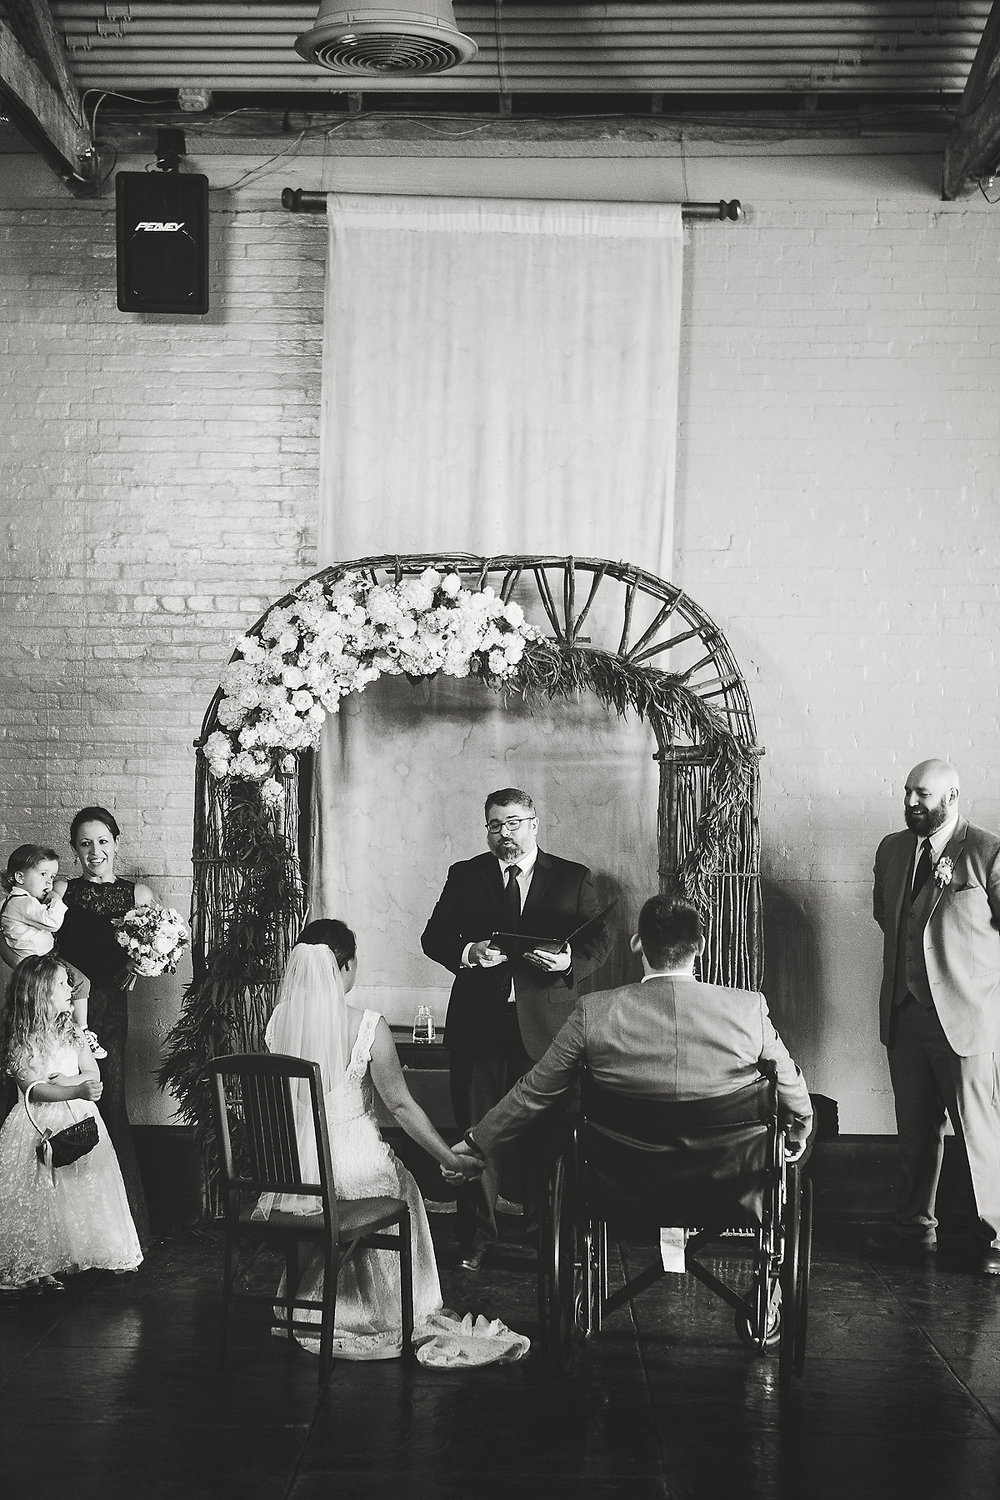 Izzy Hudgins Wedding Photography couple at altar, bride also sitting on chair